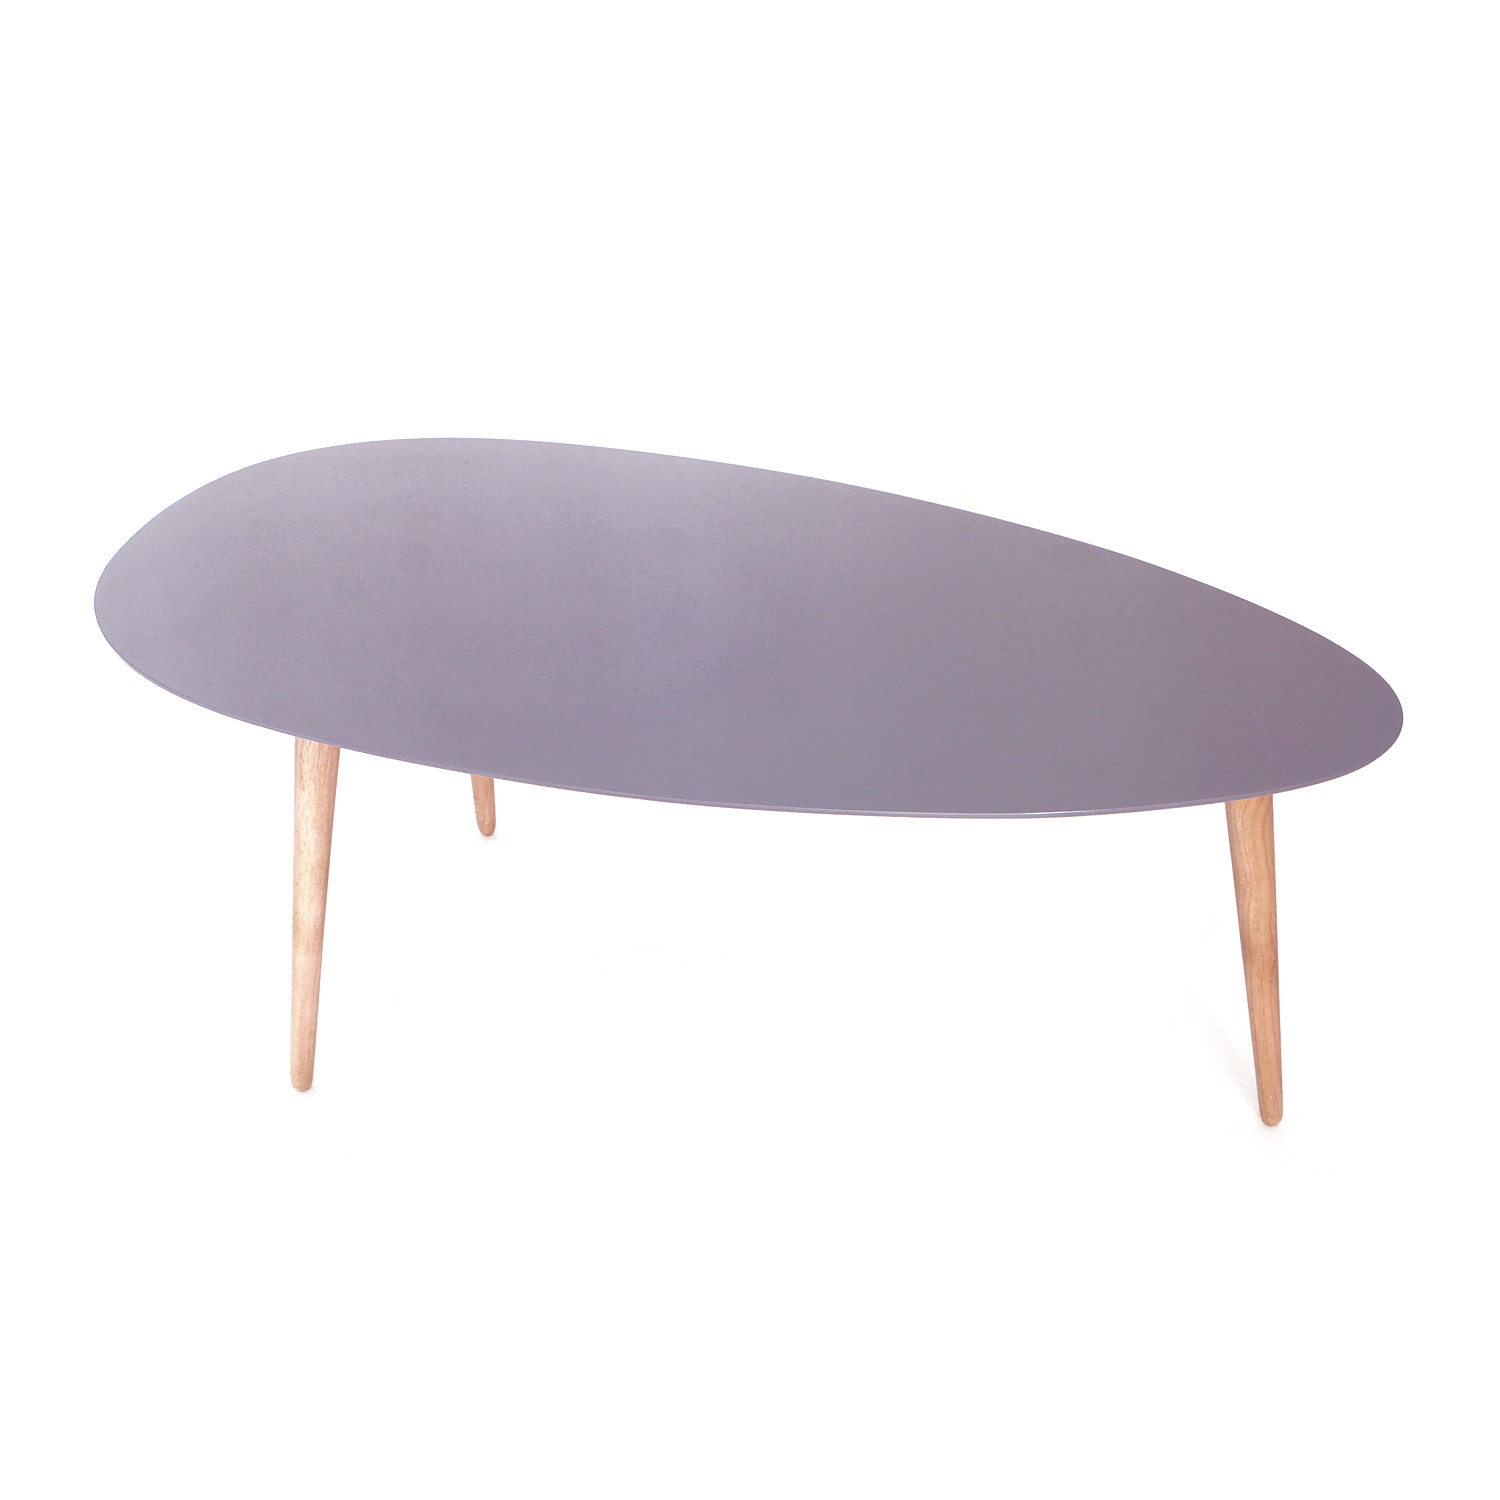 Large Egg Table (Grey)